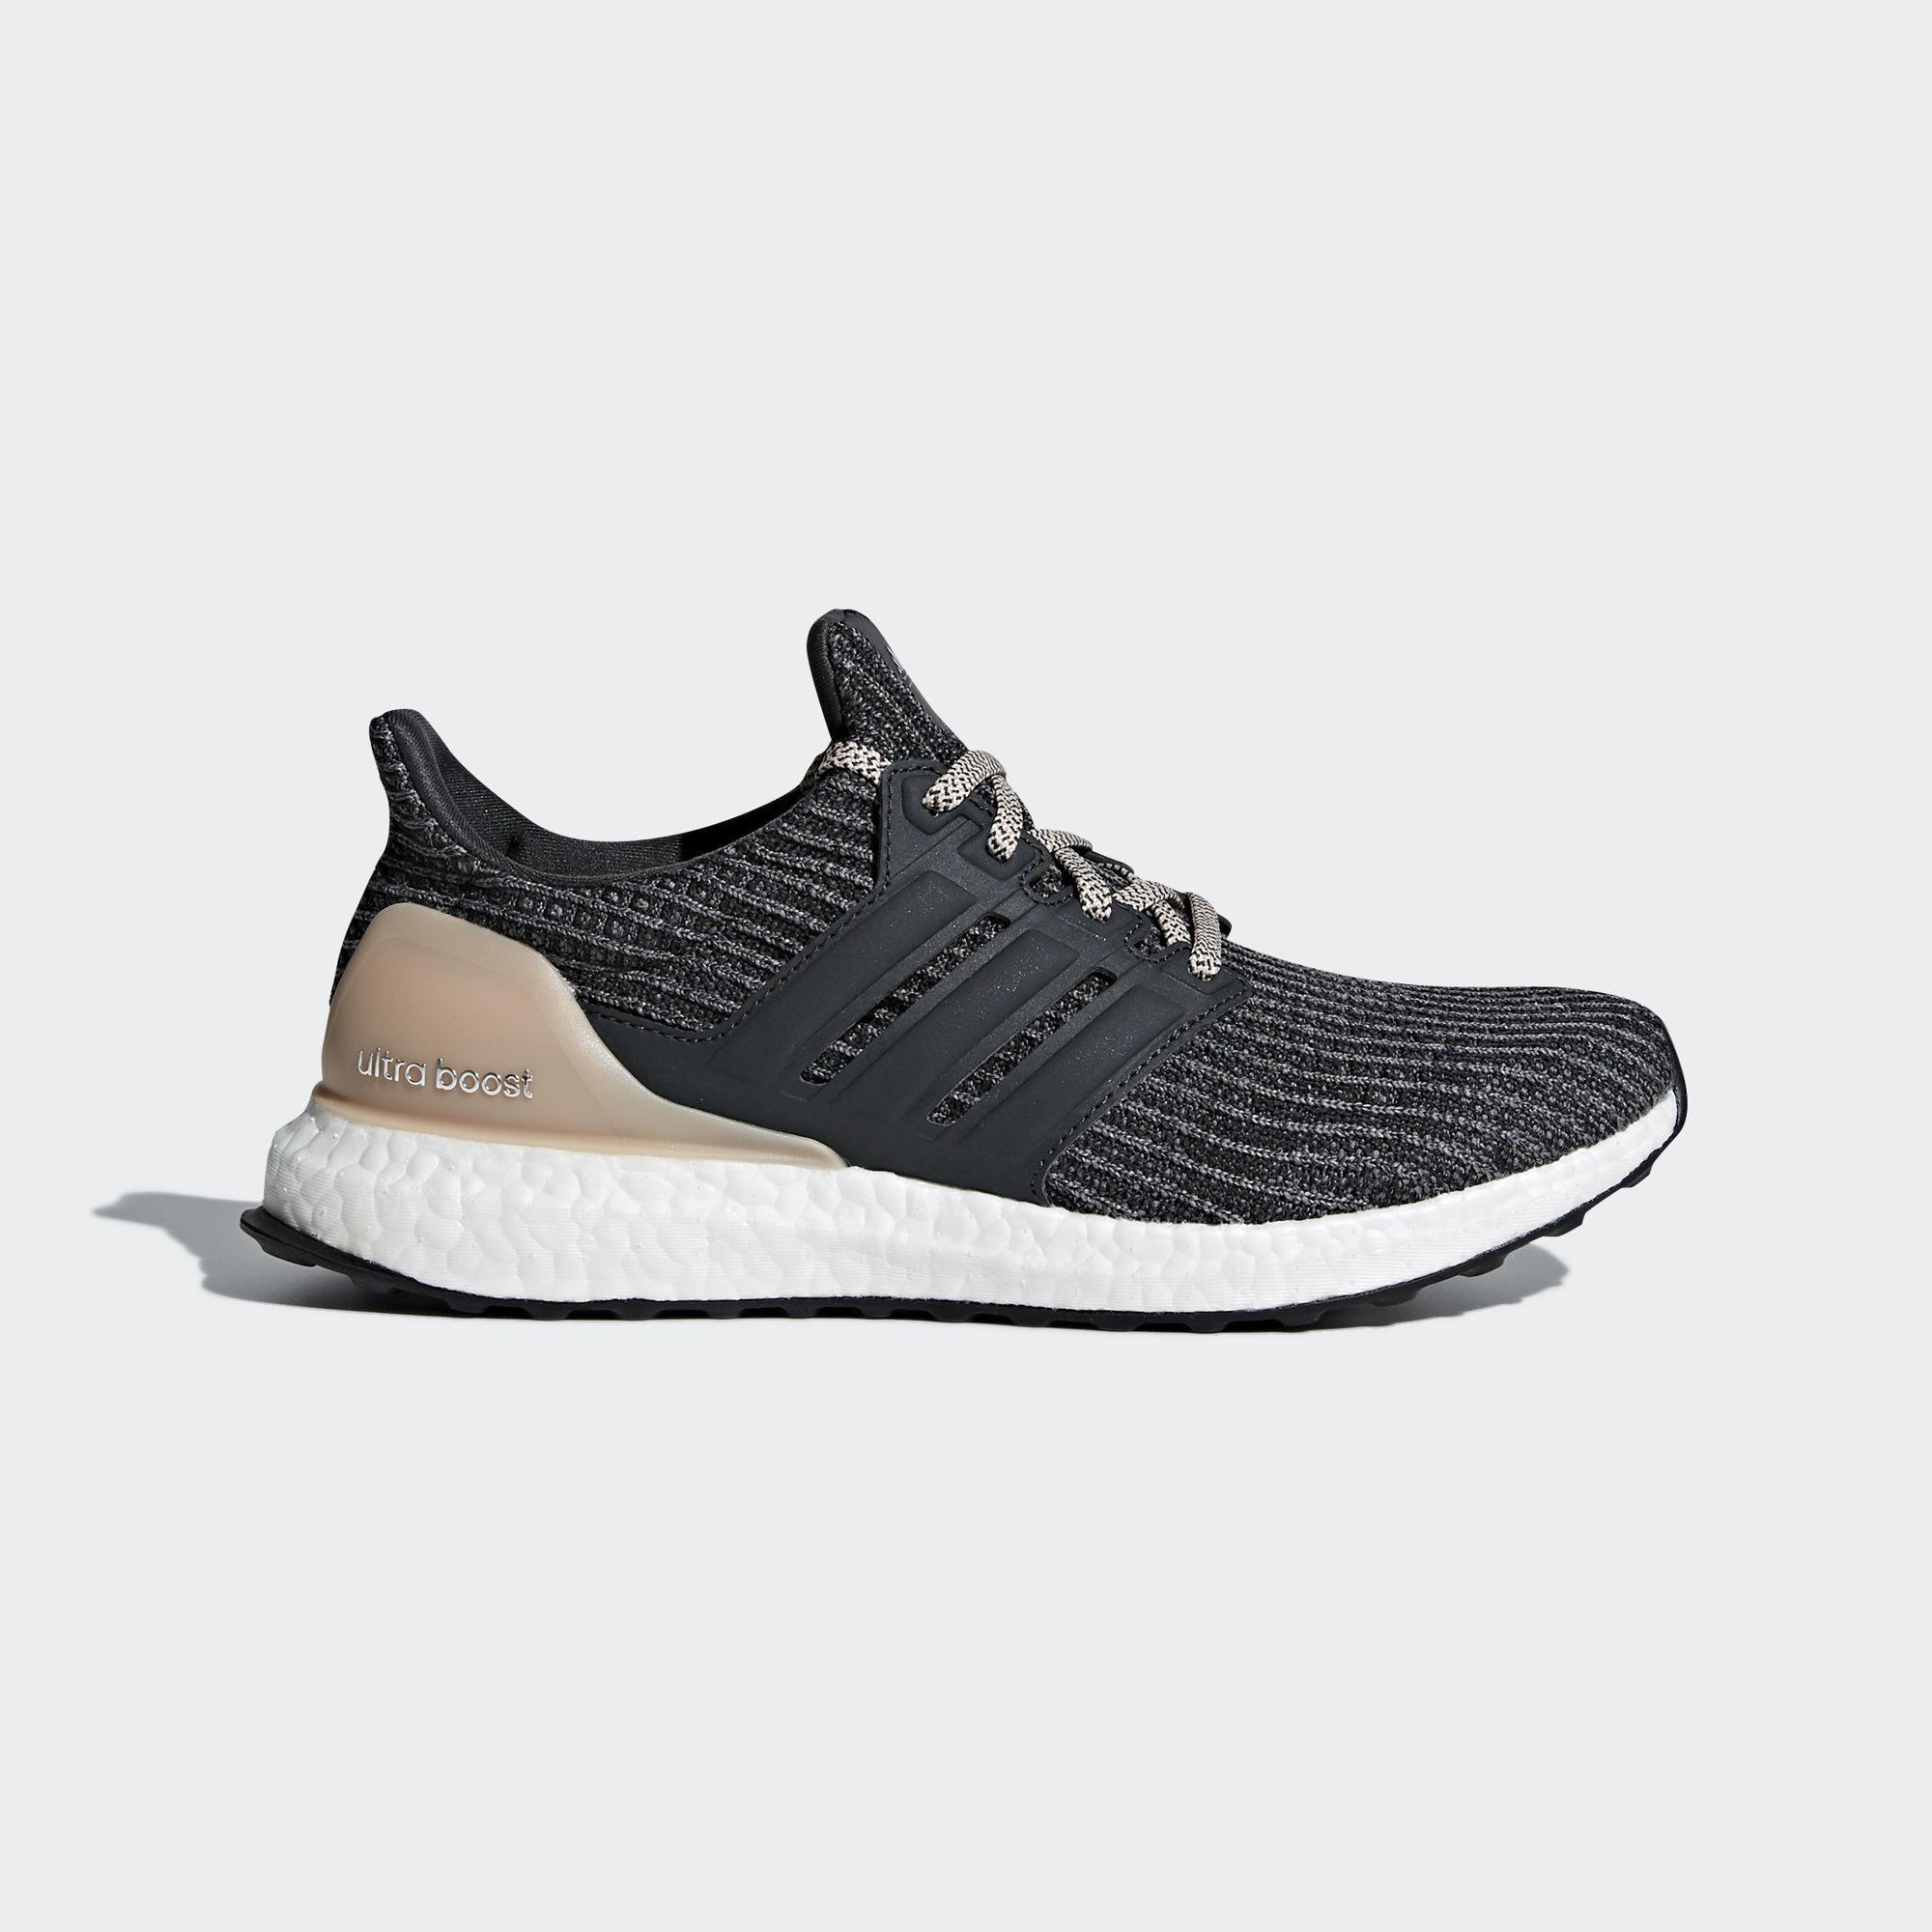 huge selection of e901e cb18e netherlands adidas ultra boost white outfit 65aad 0e1e3  uk adidas womens ultra  boost running shoes grey five carbon ash pearl 5b9fb 7cc79